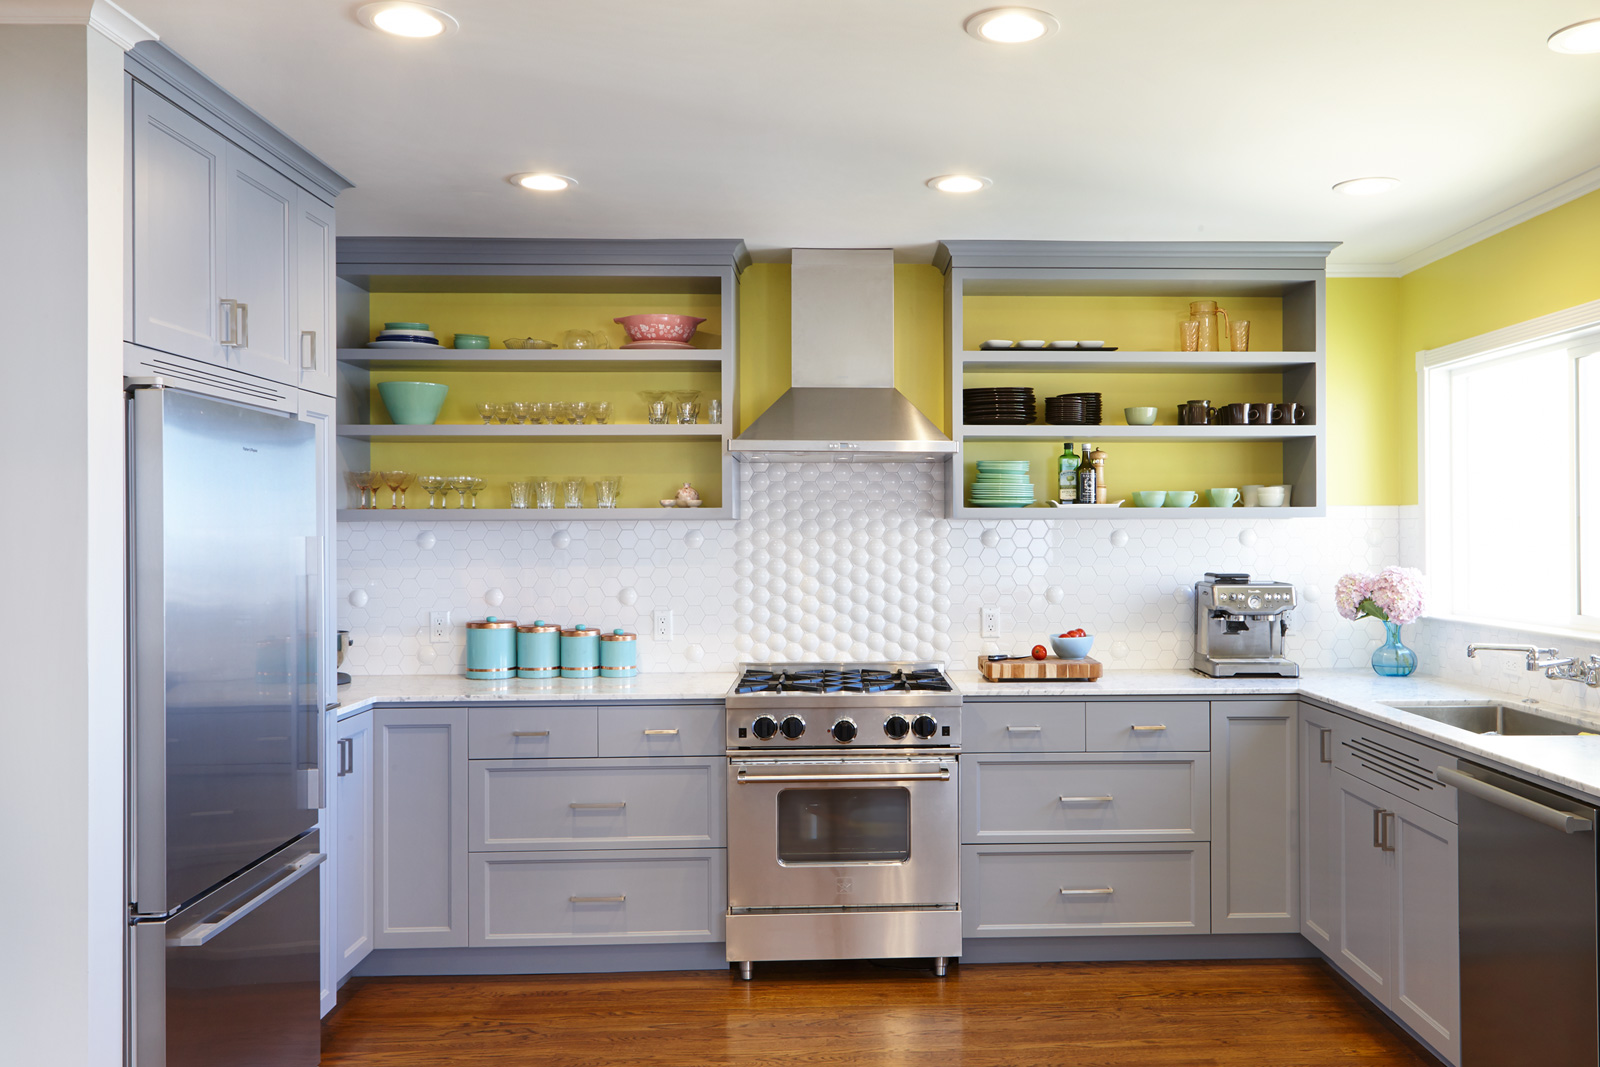 Best Paint For Kitchen Cabinets Paint For Kitchens - Best paint to use on kitchen cabinets